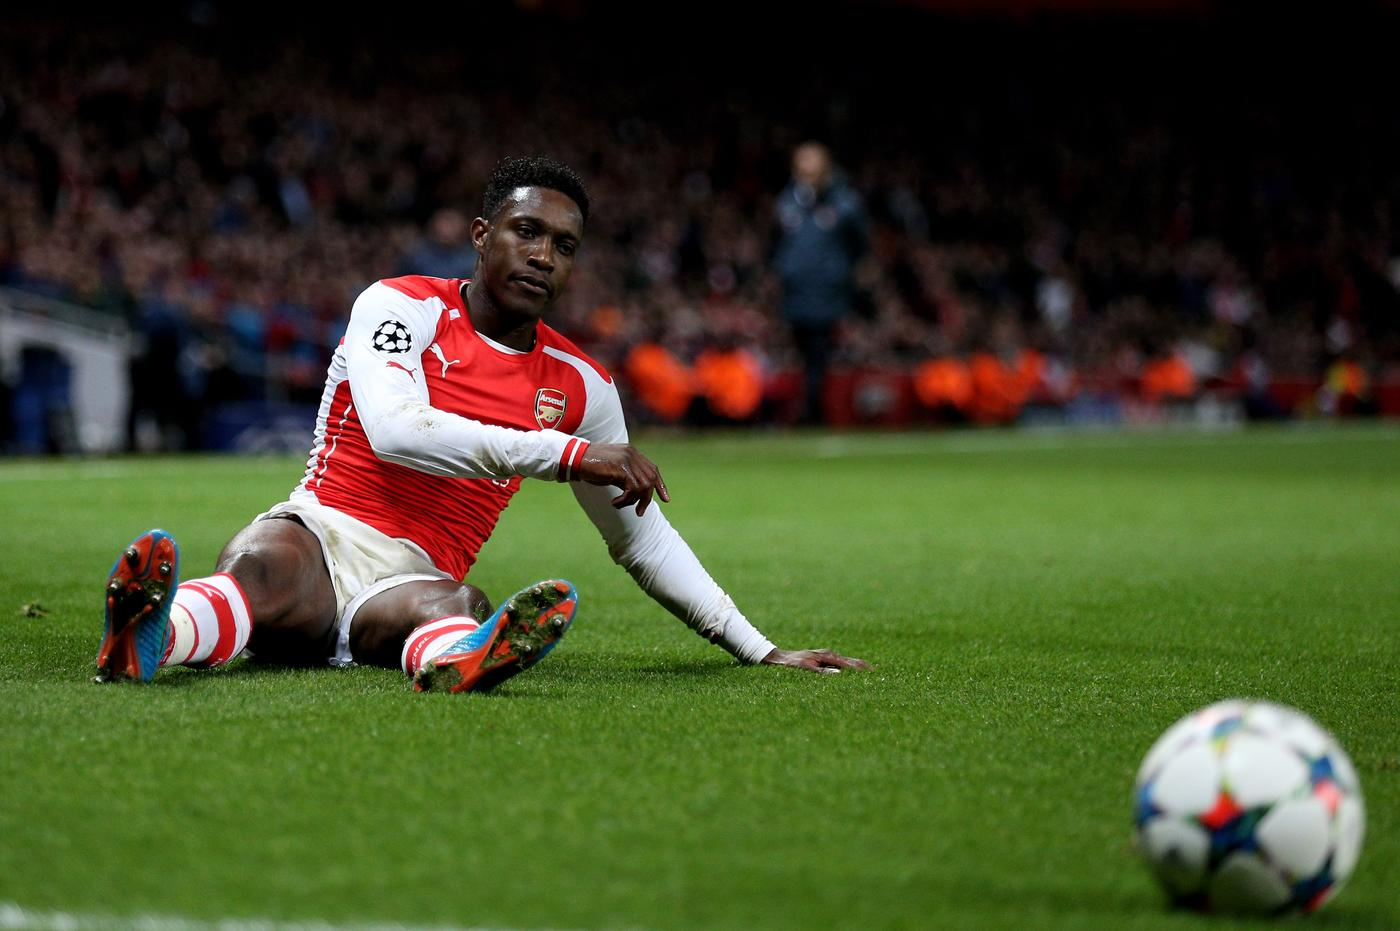 Olivier Giroud's top form for Arsenal poses dilemma for Danny Welbeck